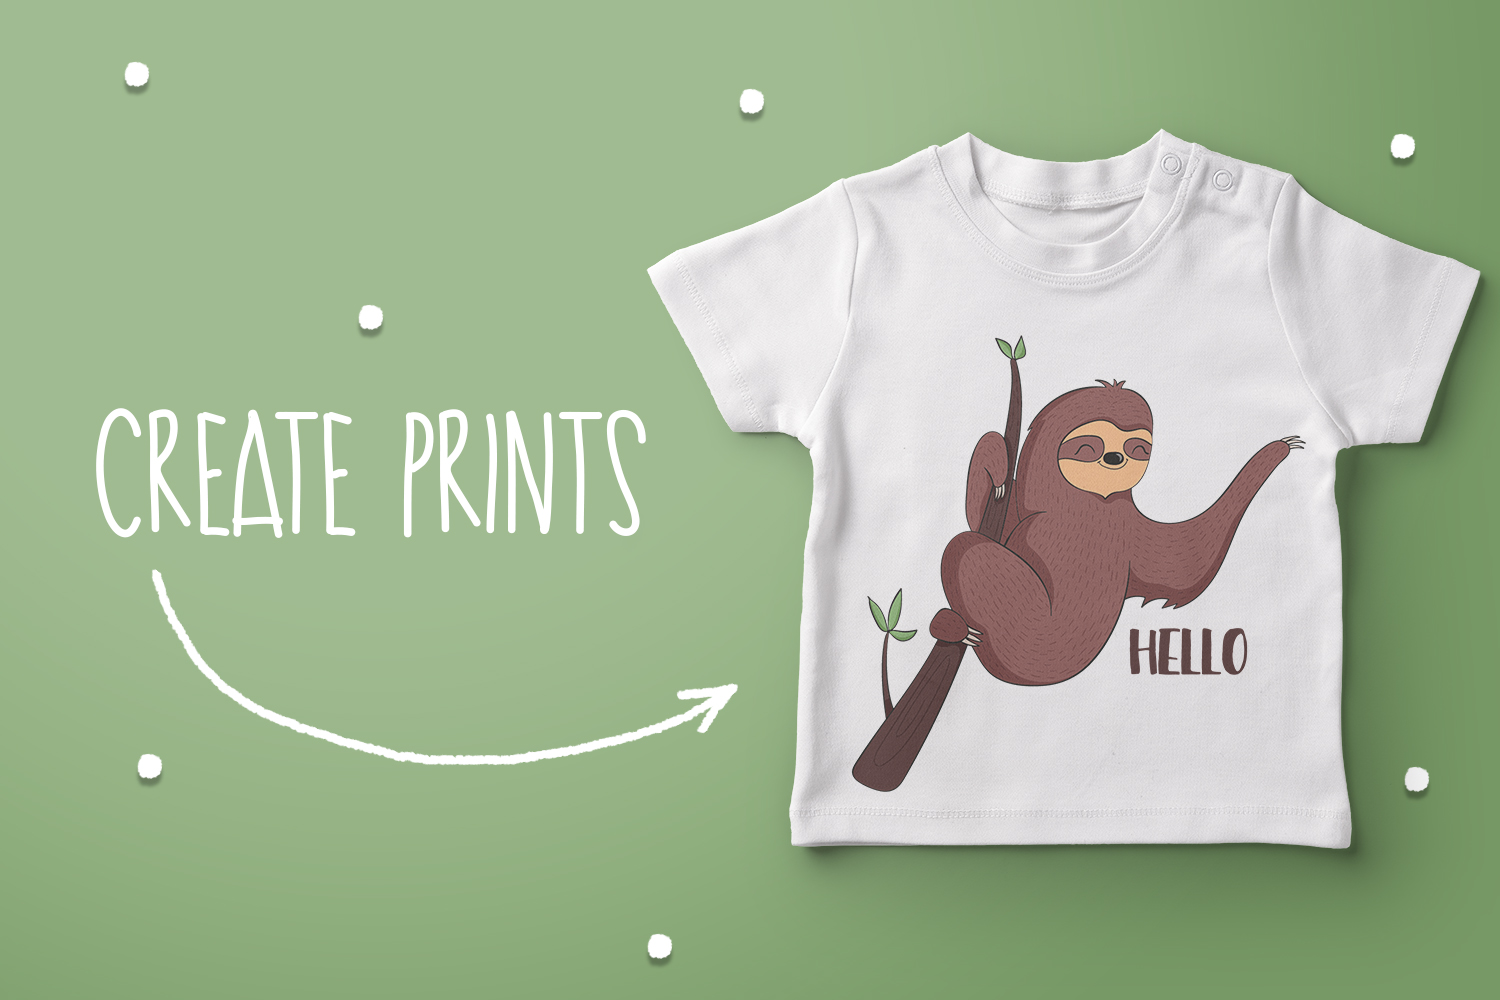 Lovable Sloths 2 example image 3